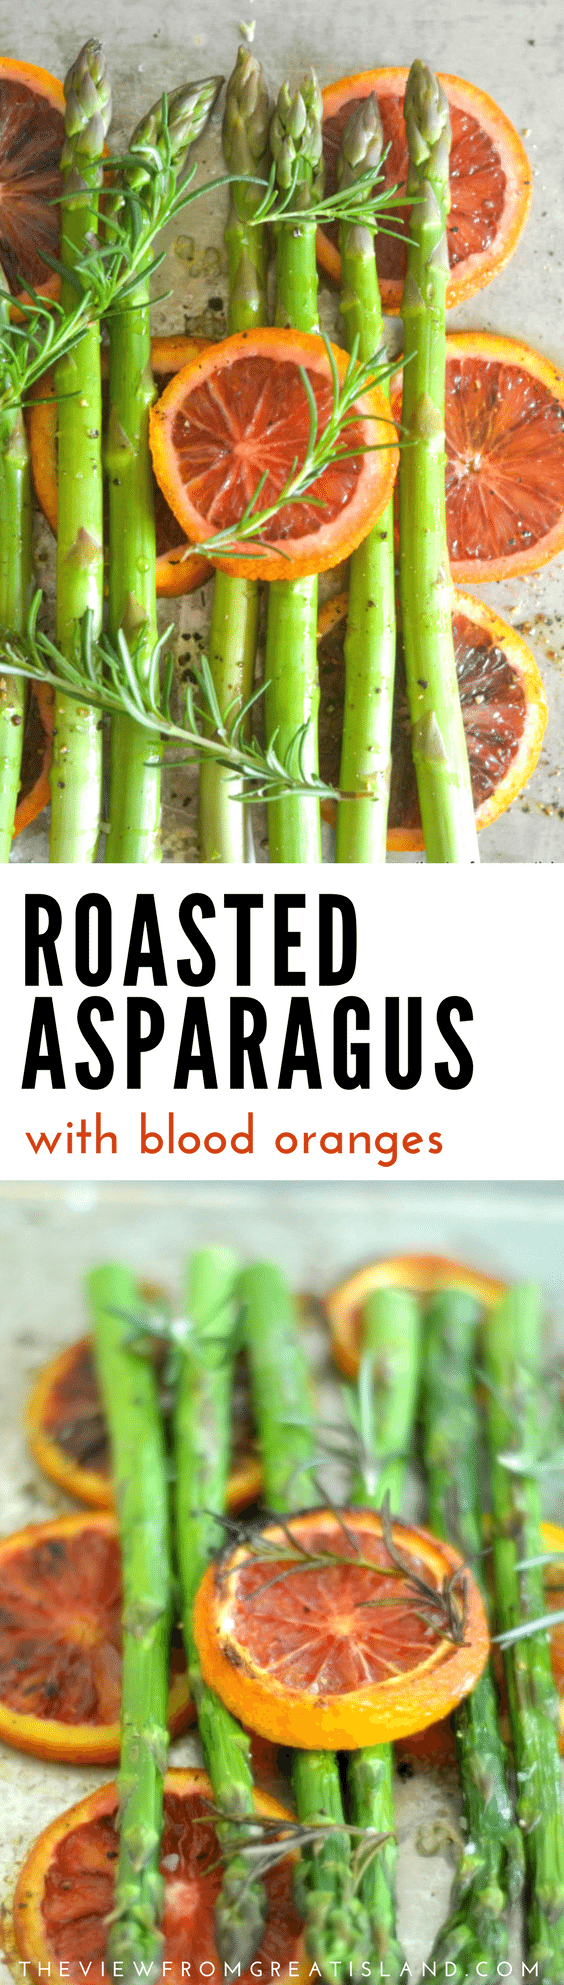 Asparagus roasted with blood oranges reflects a fleeting moment in time...the blood oranges are on their way out just as the asparagus are coming into season and the two cross paths for one brief moment.  Healthy, simple,  glorious.  #asparagus #roastedasparagusrecipe #bloodoranges #bloodorangerecipe #paleo #vegan #vegetarian #vegetables #springvegetables #citrus #healthyrecipe #sidedish